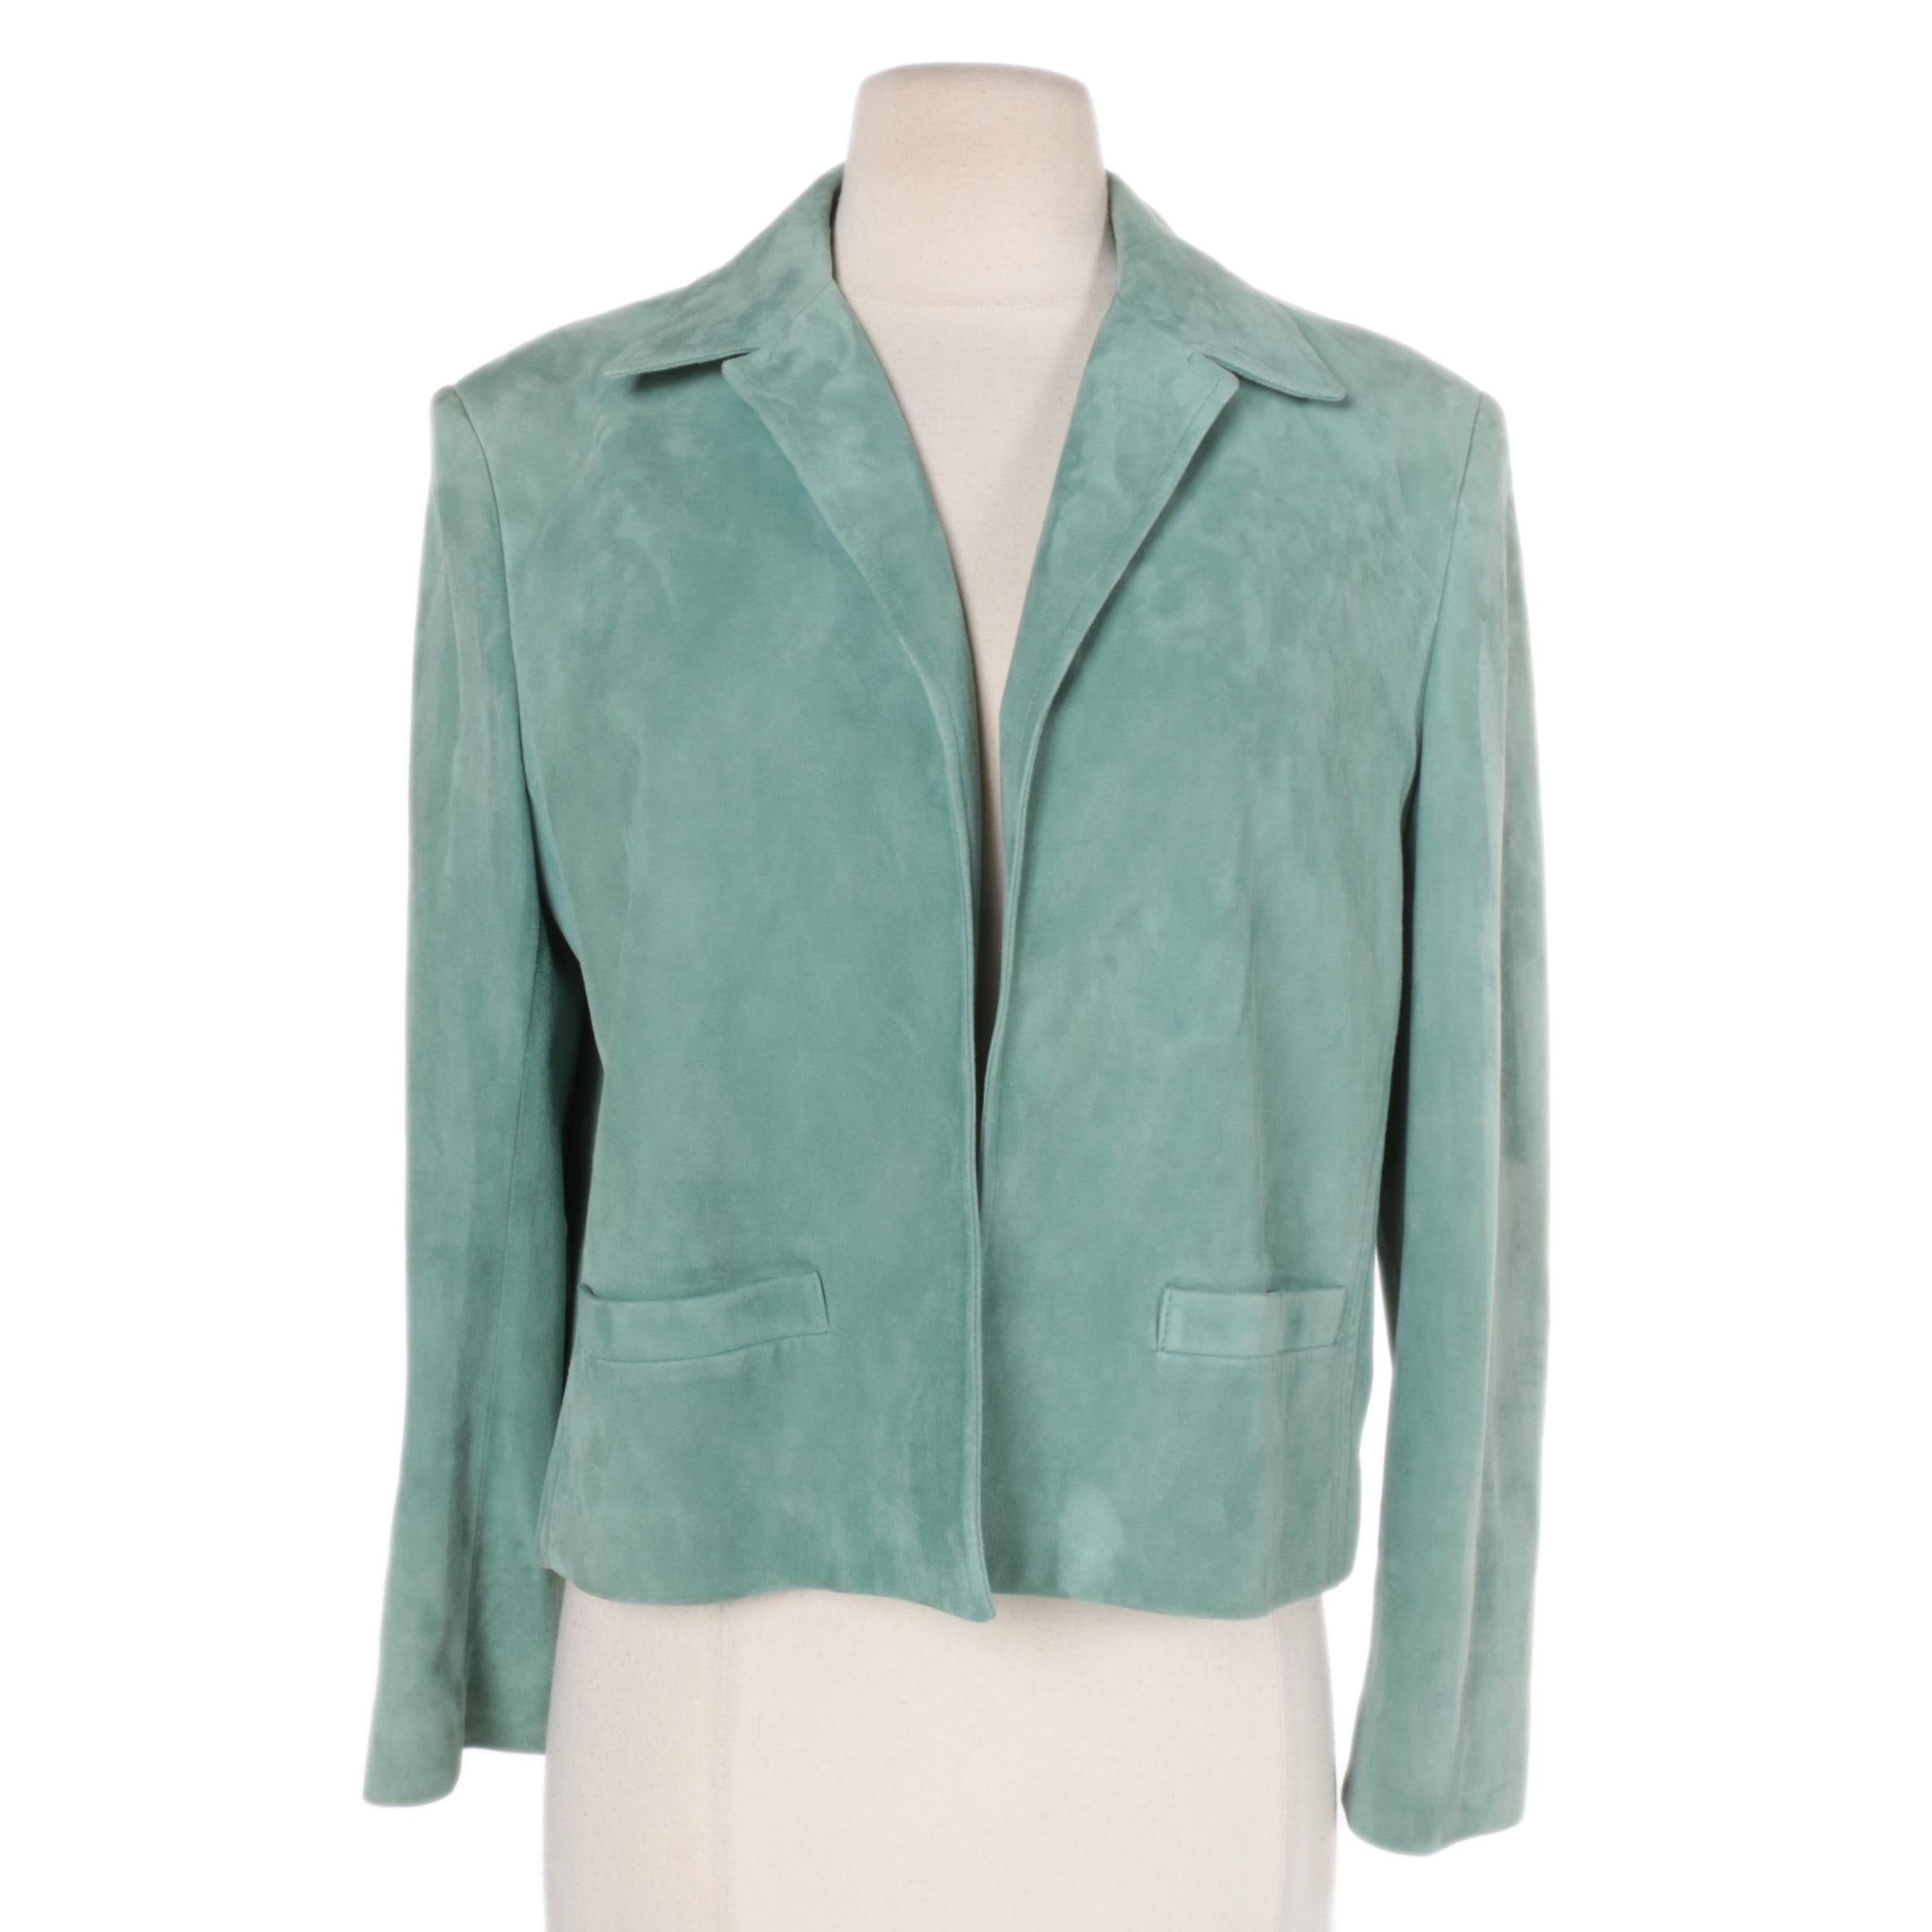 Women's Ralph Lauren Green Suede Jacket